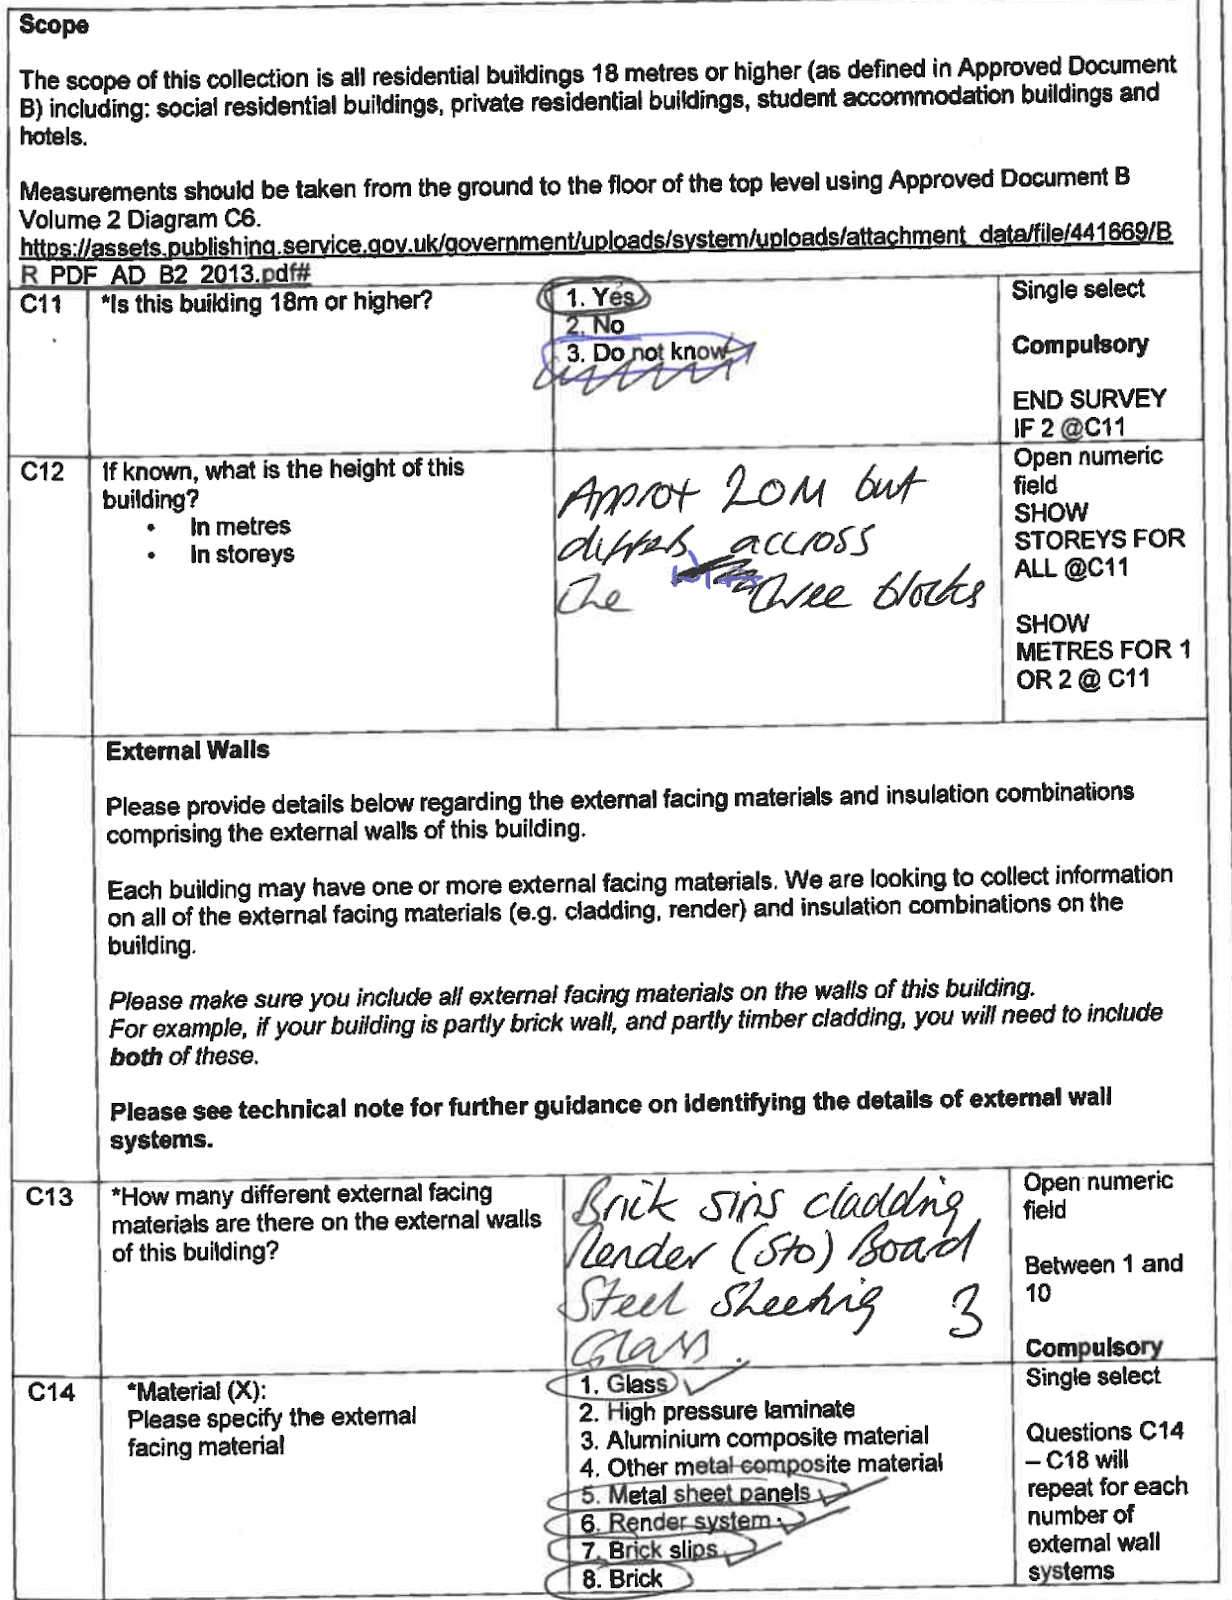 A page of the EWS questionnaire, completed by hand and returned by a building owner.